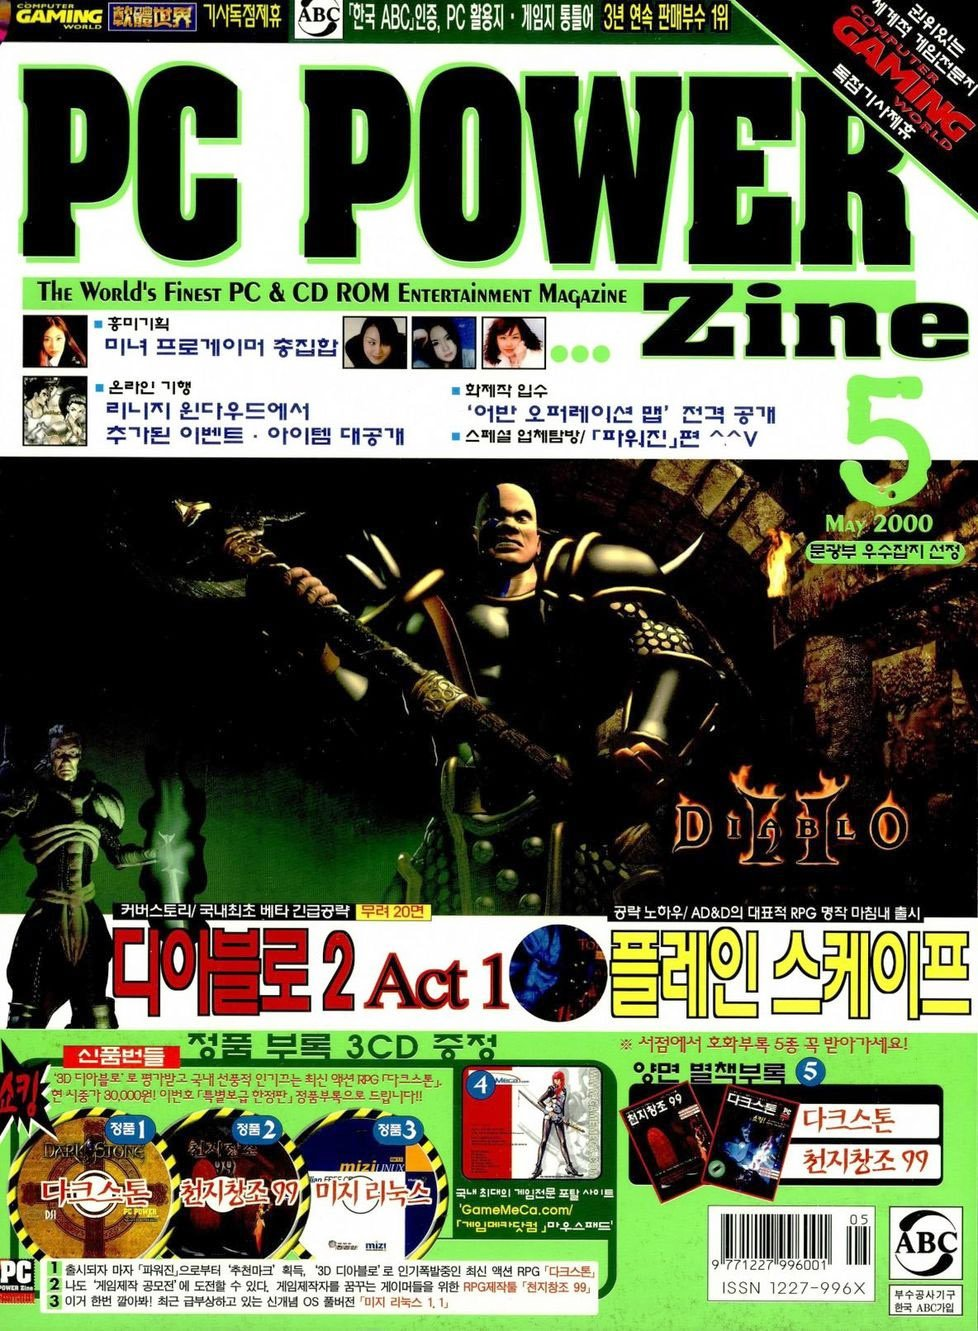 PC Power Zine Issue 58 (May 2000)